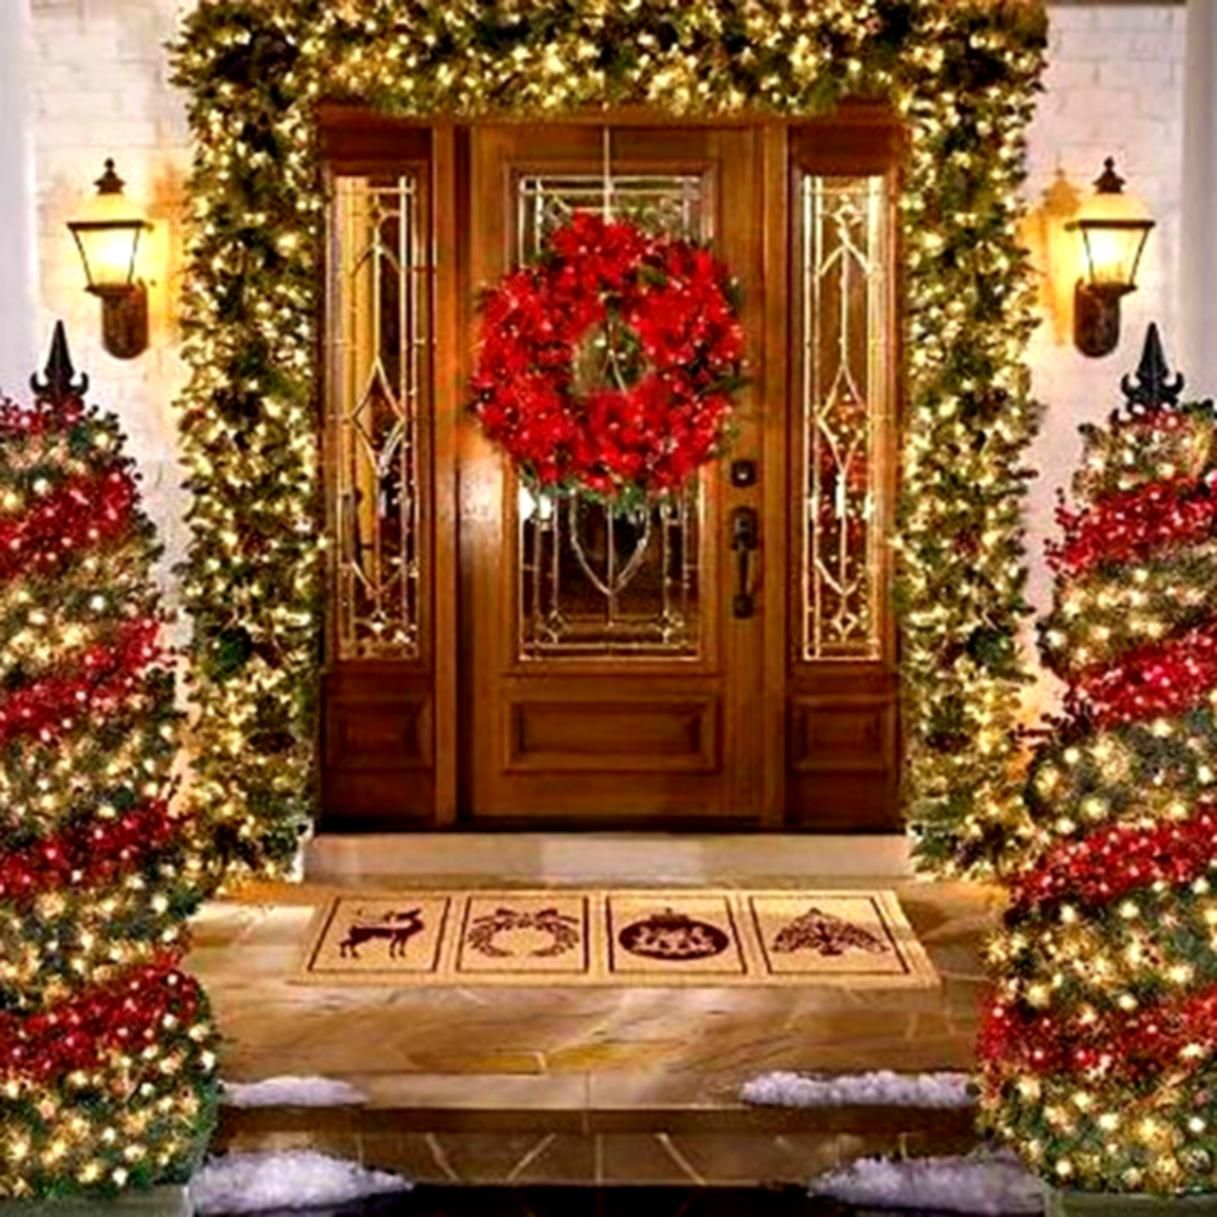 Outdoor christmas decorations 2014 - Decorating Landscaping Ideas Small Front Yard Led Christmas Lights Outdoor Christmas Decorating 2014 Decorating Outside For Christmas Small Front Yard